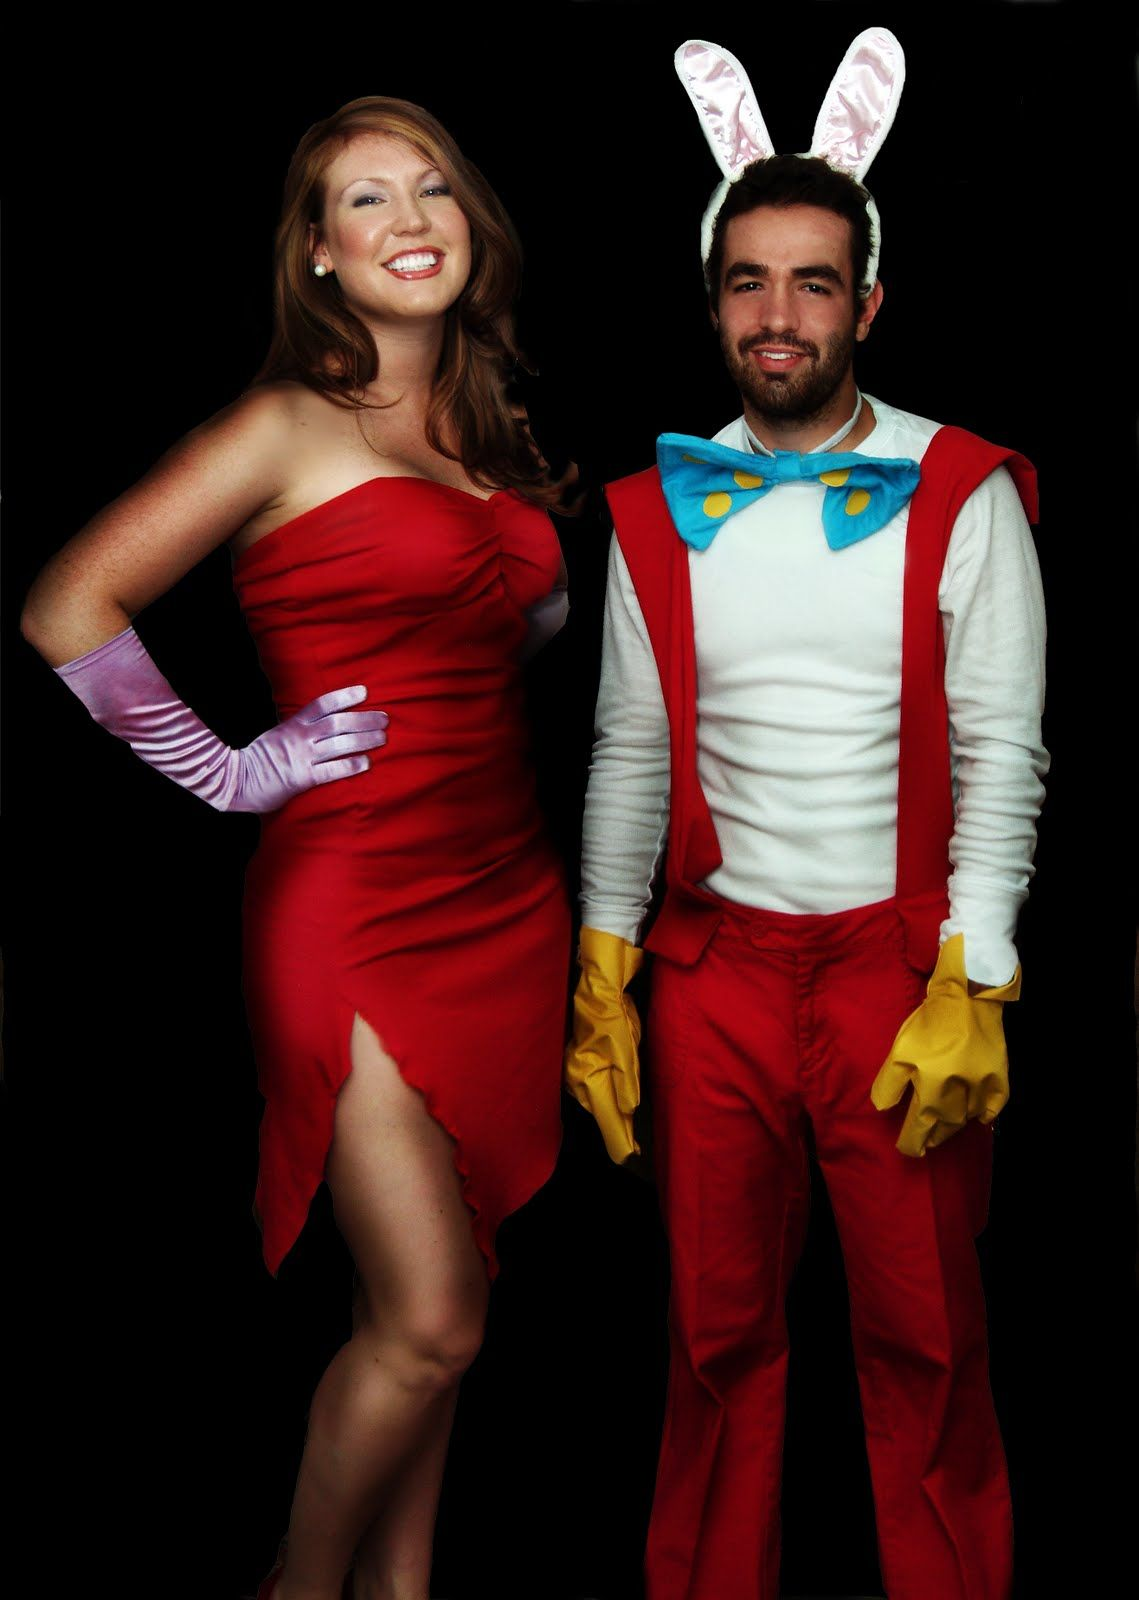 Haha, love this Roger Rabbit costume, too funny.